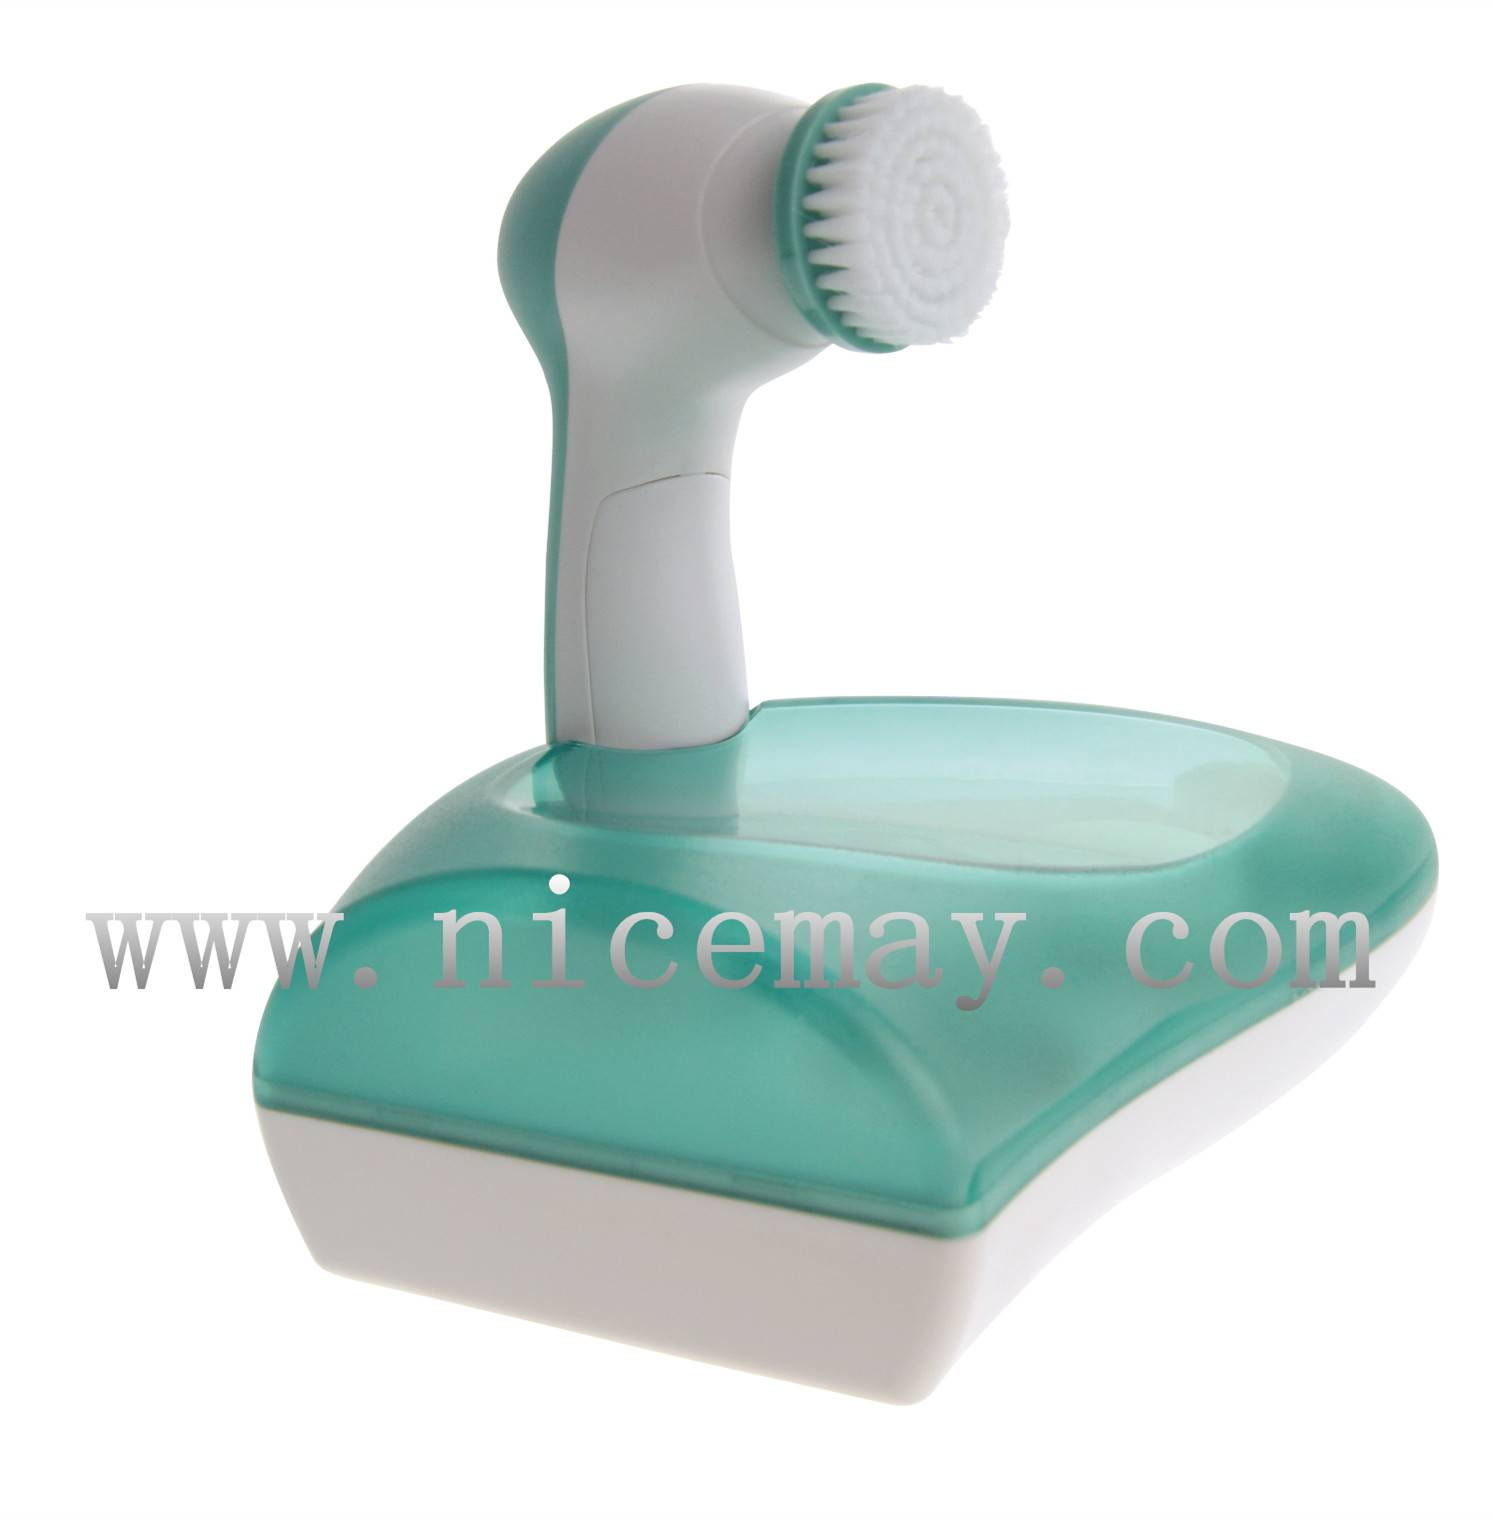 4 in 1 Skin Care Beauty Cleansing Brush PC-8308B